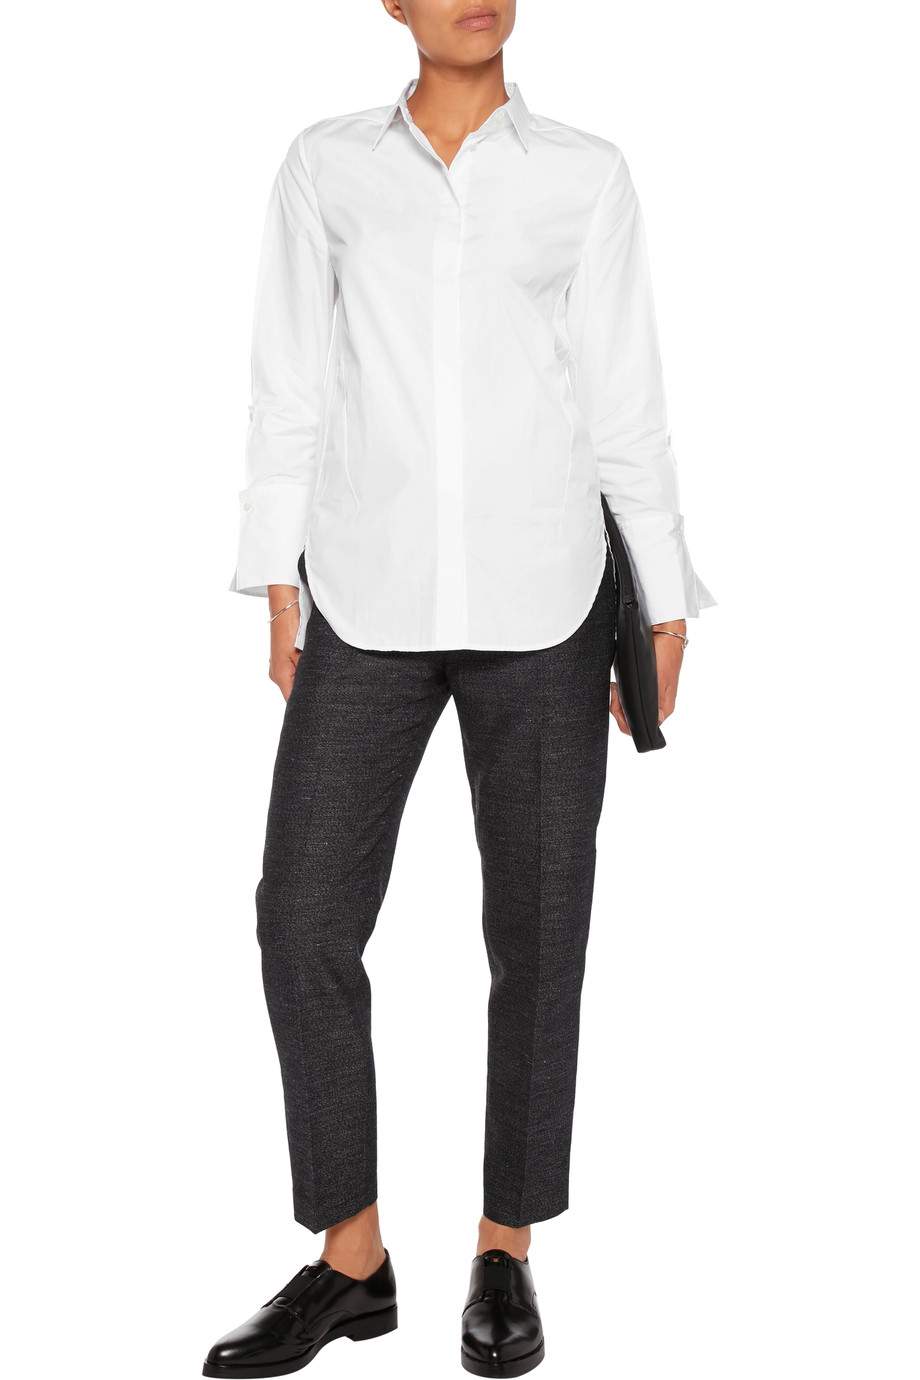 Cotton Poplin Shirt  by  3.1 Phillip Lim , £86 on The Outnet